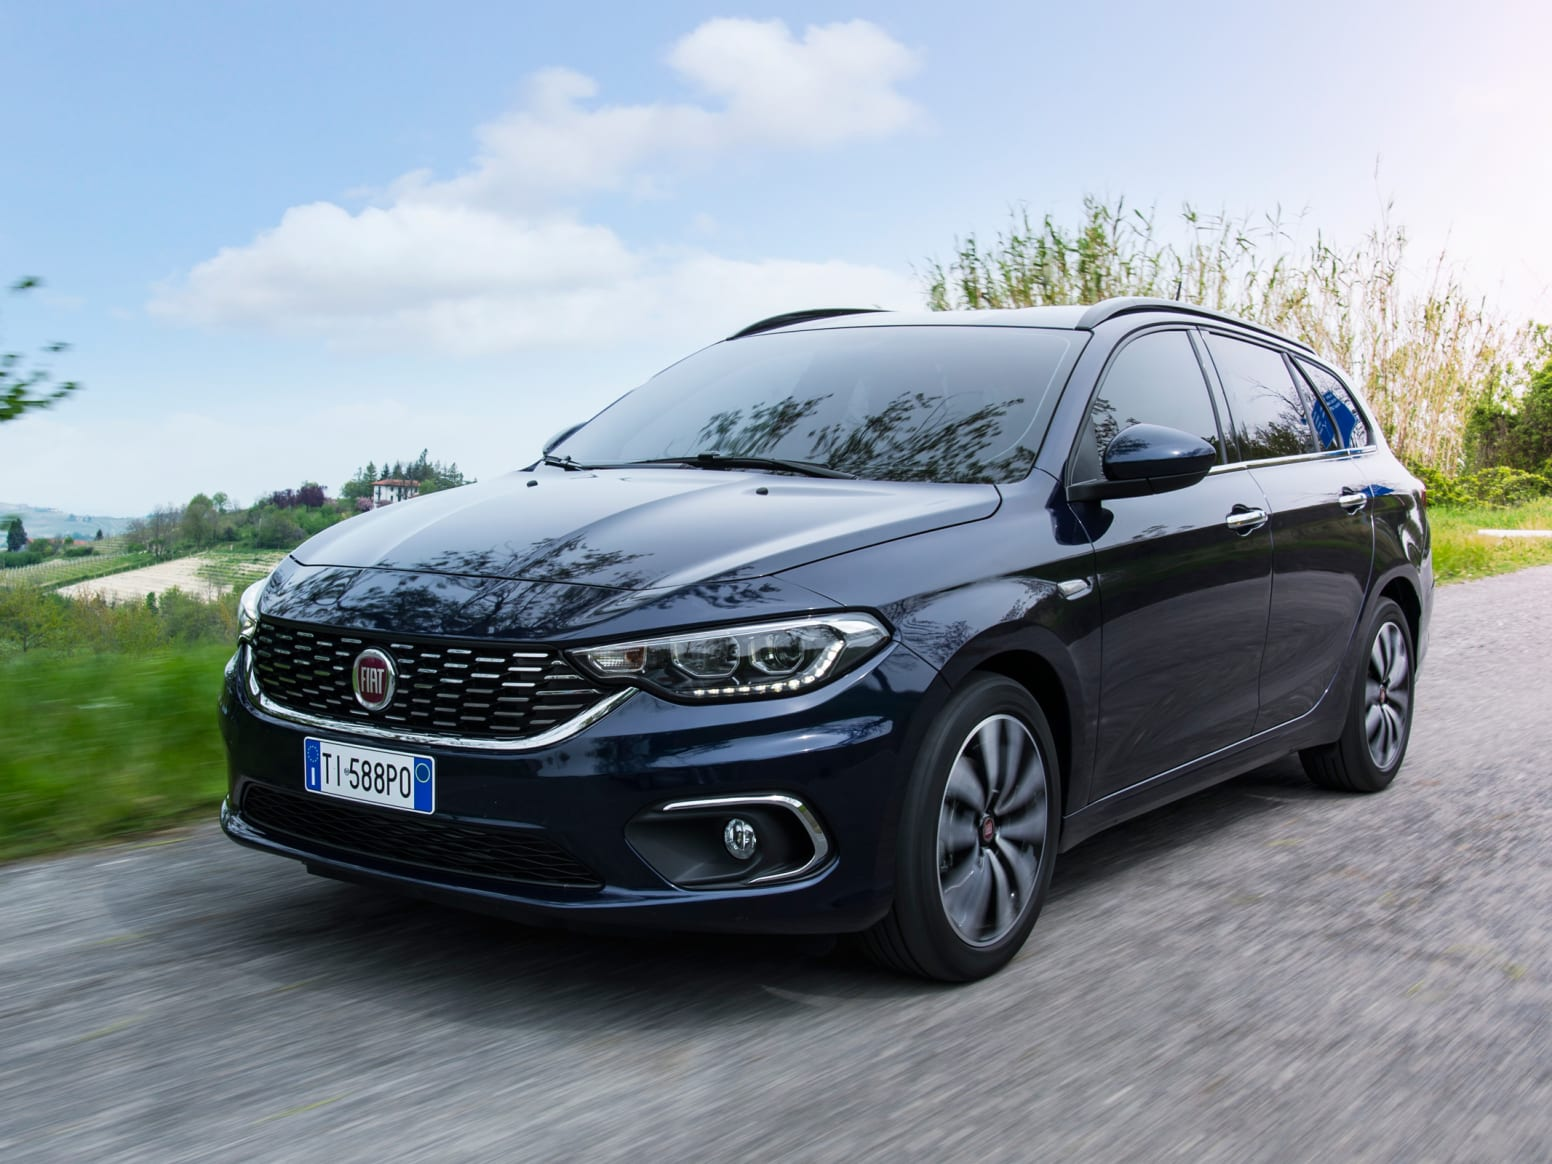 Fiat Tipo Station Wagon Front Exterior